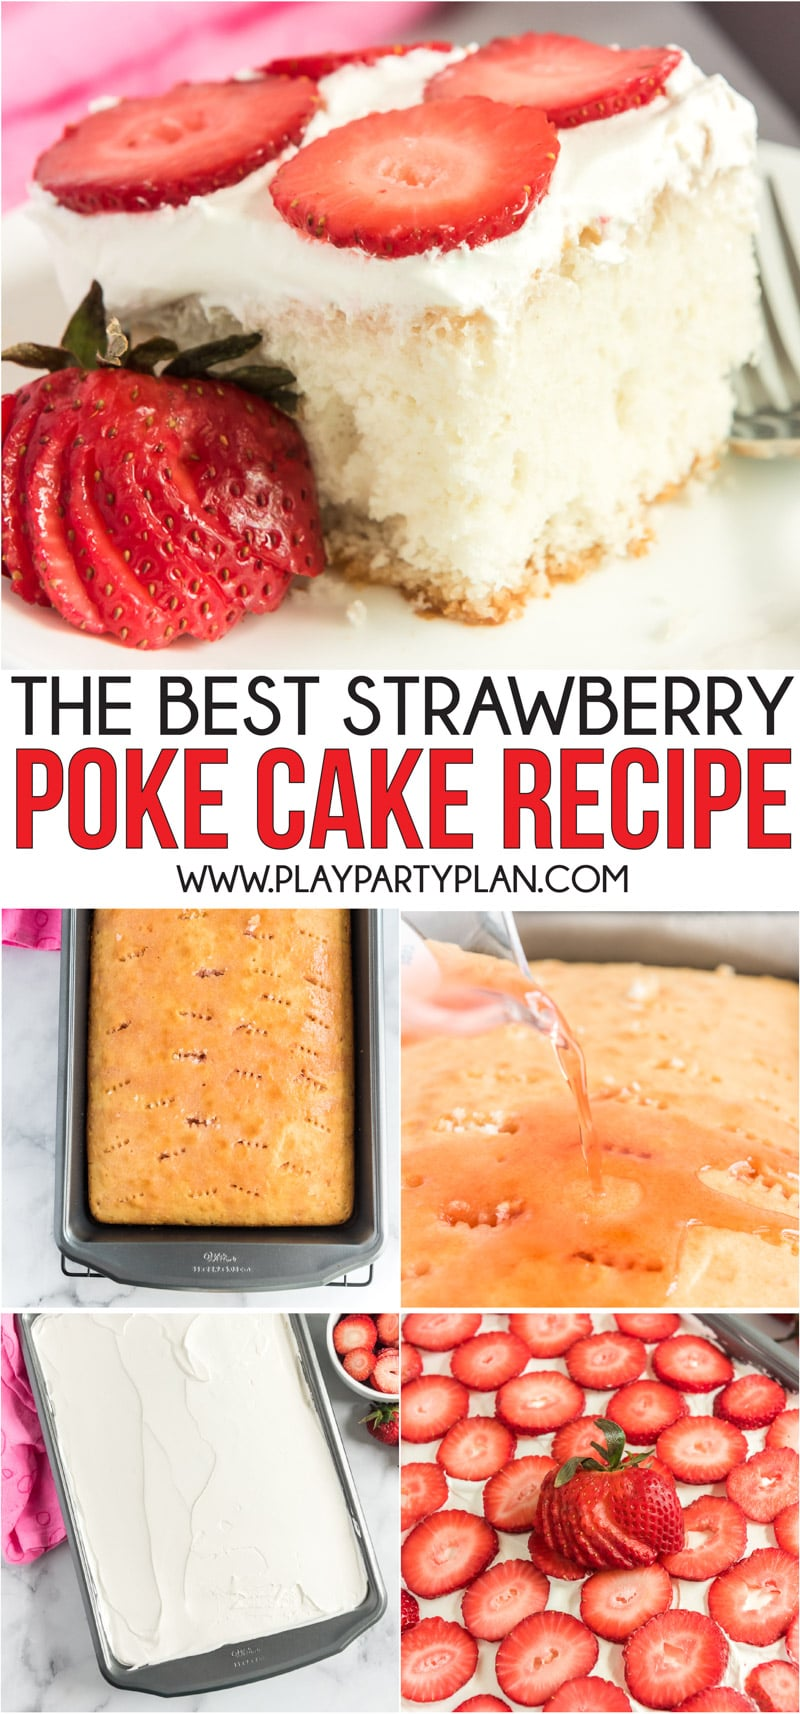 An easy and delicious strawberry poke cake recipe that makes the perfect summer dessert! via @playpartyplan